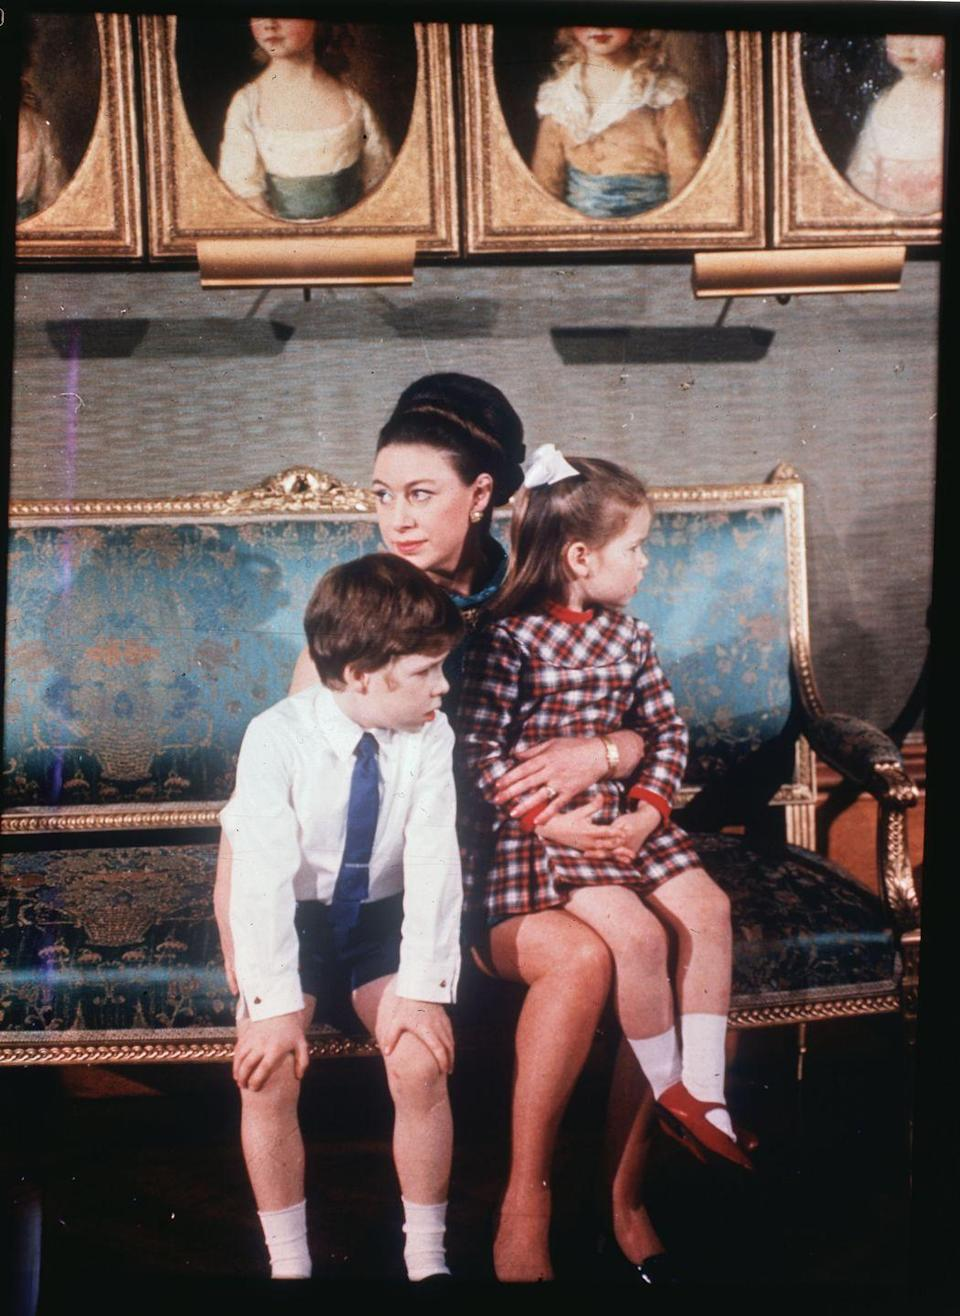 "<p>Princess Margaret with David and Sarah during the filming of <a href=""https://www.oprahmag.com/entertainment/tv-movies/a29831109/royal-family-documentary-1969/"" rel=""nofollow noopener"" target=""_blank"" data-ylk=""slk:the BBC documentary, Royal Family."" class=""link rapid-noclick-resp"">the BBC documentary, <em>Royal Family. </em></a></p>"